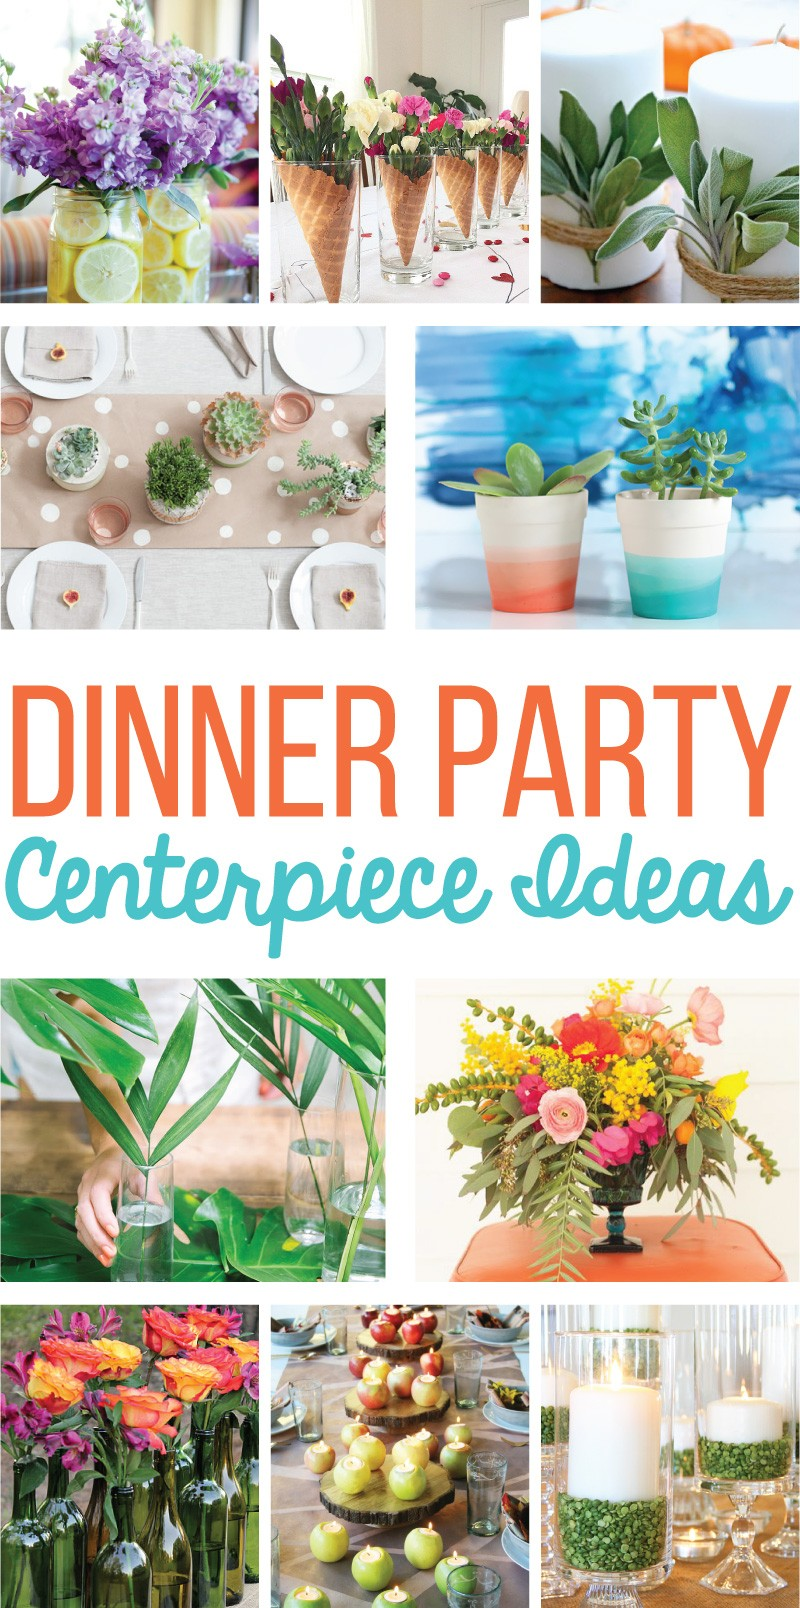 Centerpiece Ideas For Dinner Party Part - 15: 15 Easy Centerpiece Ideas For A Dinner Party On Love The Day